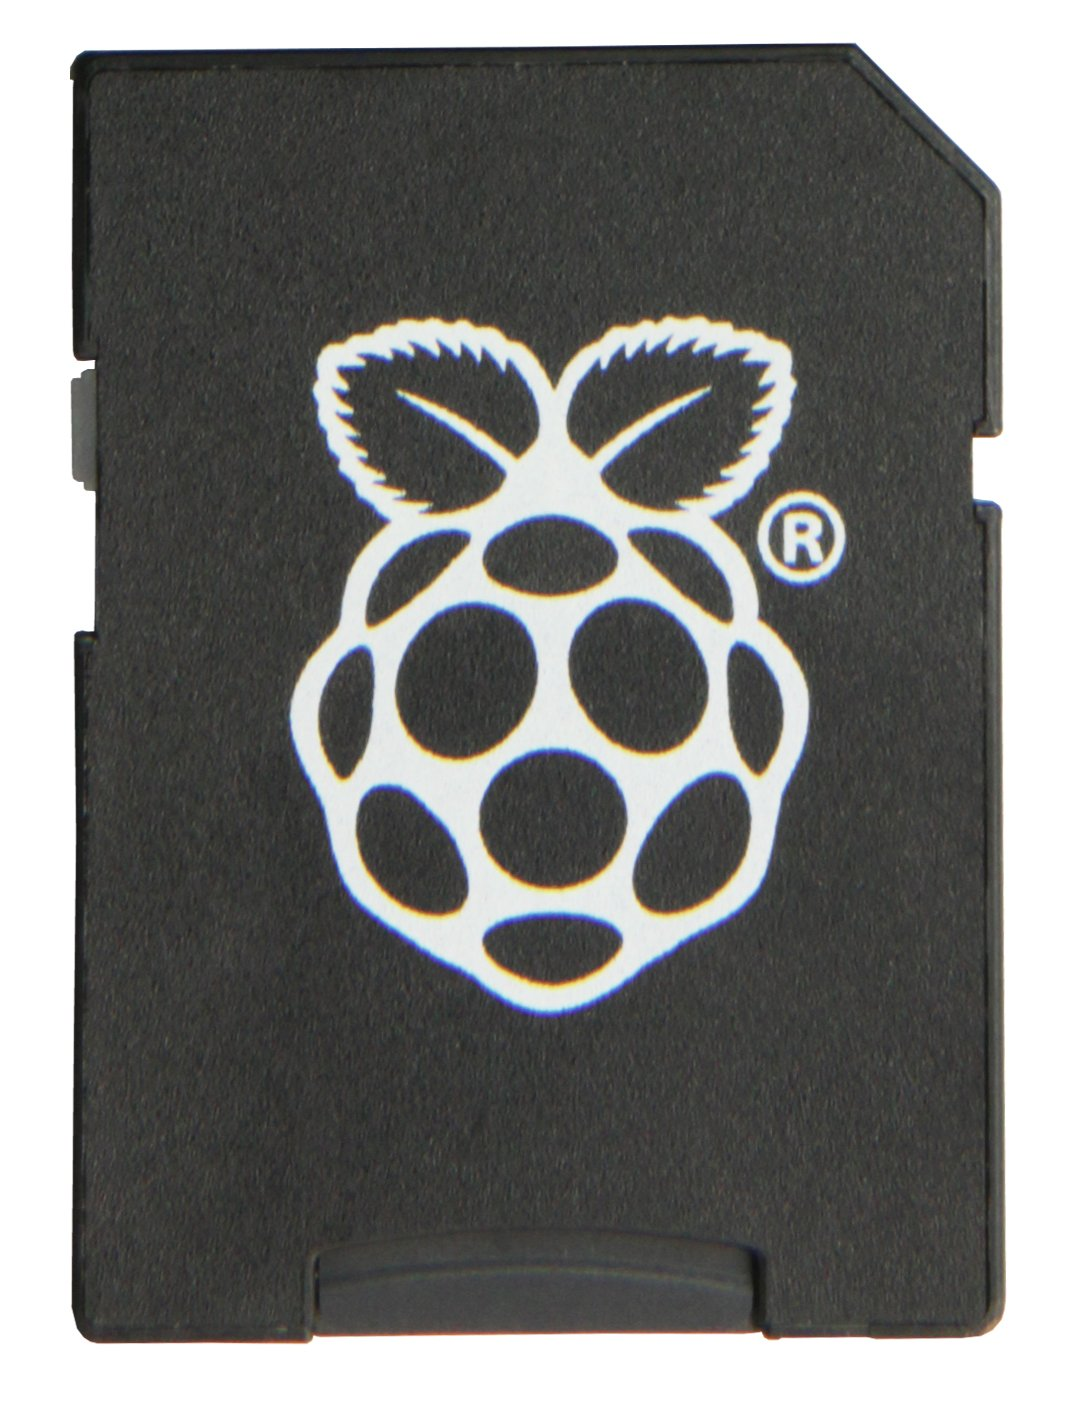 Raspberry Pi 8GB Preloaded (Noobs) SD Card